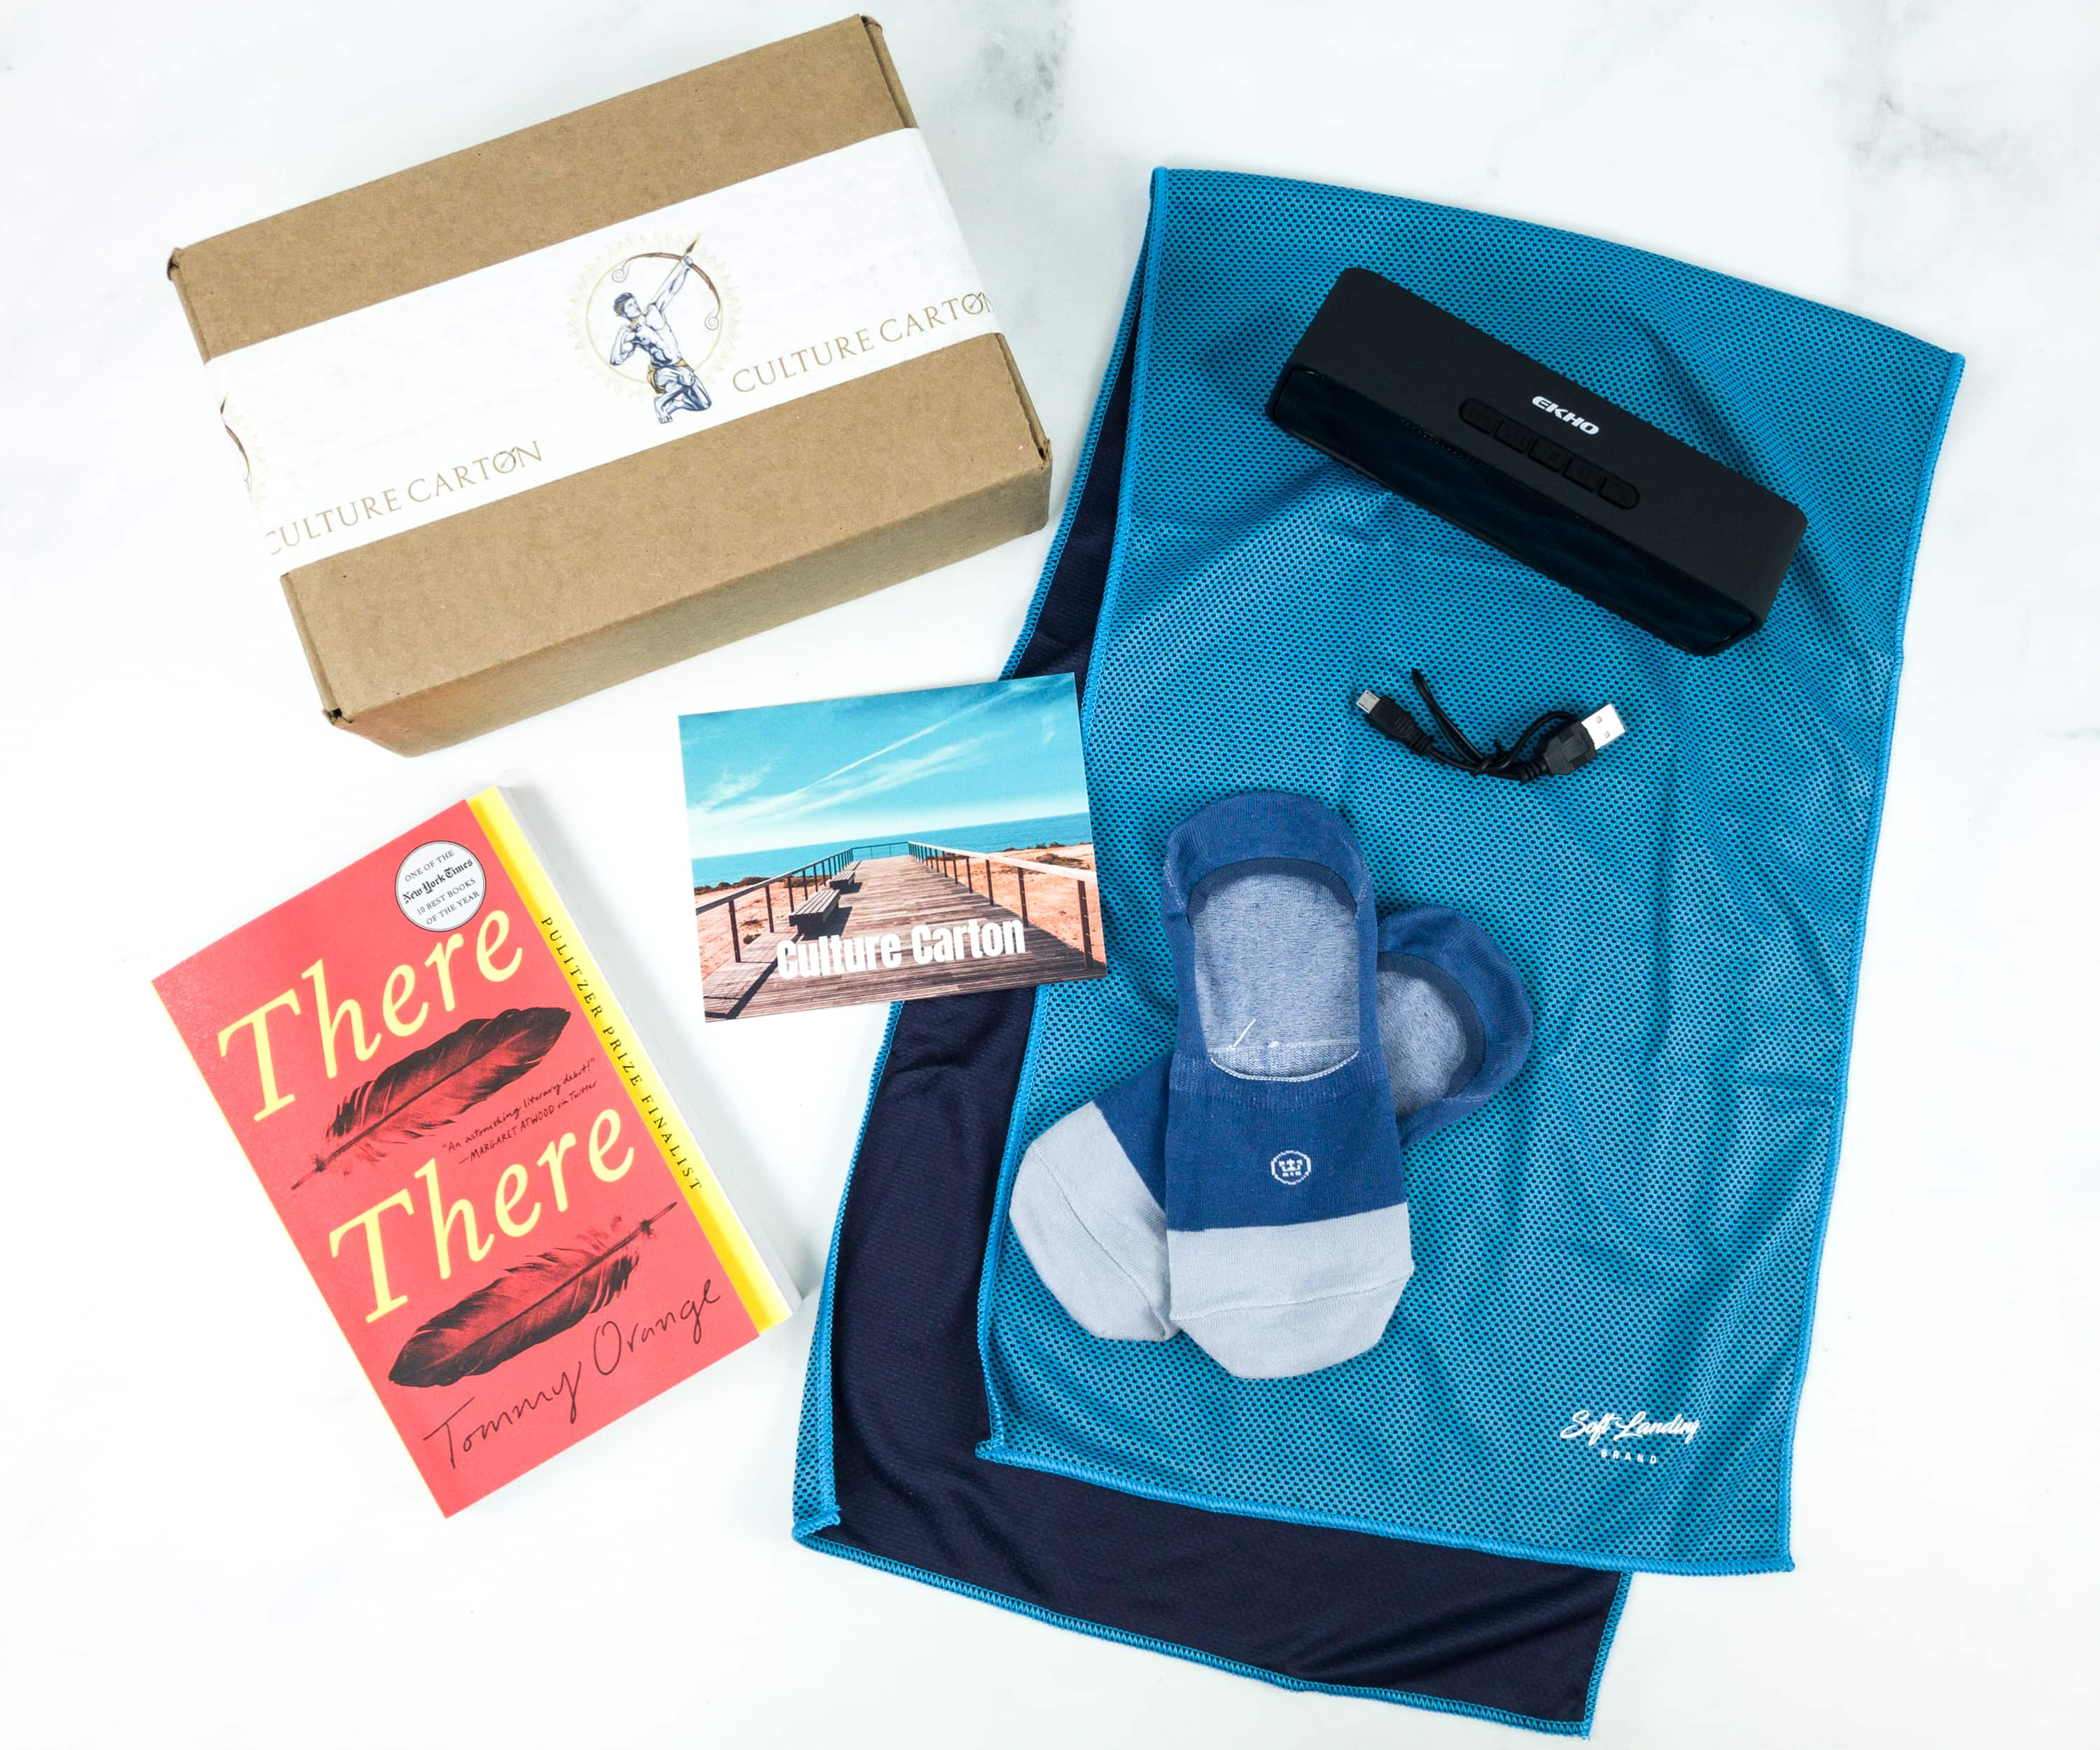 Culture Carton July 2019 Subscription Box Review + Coupon